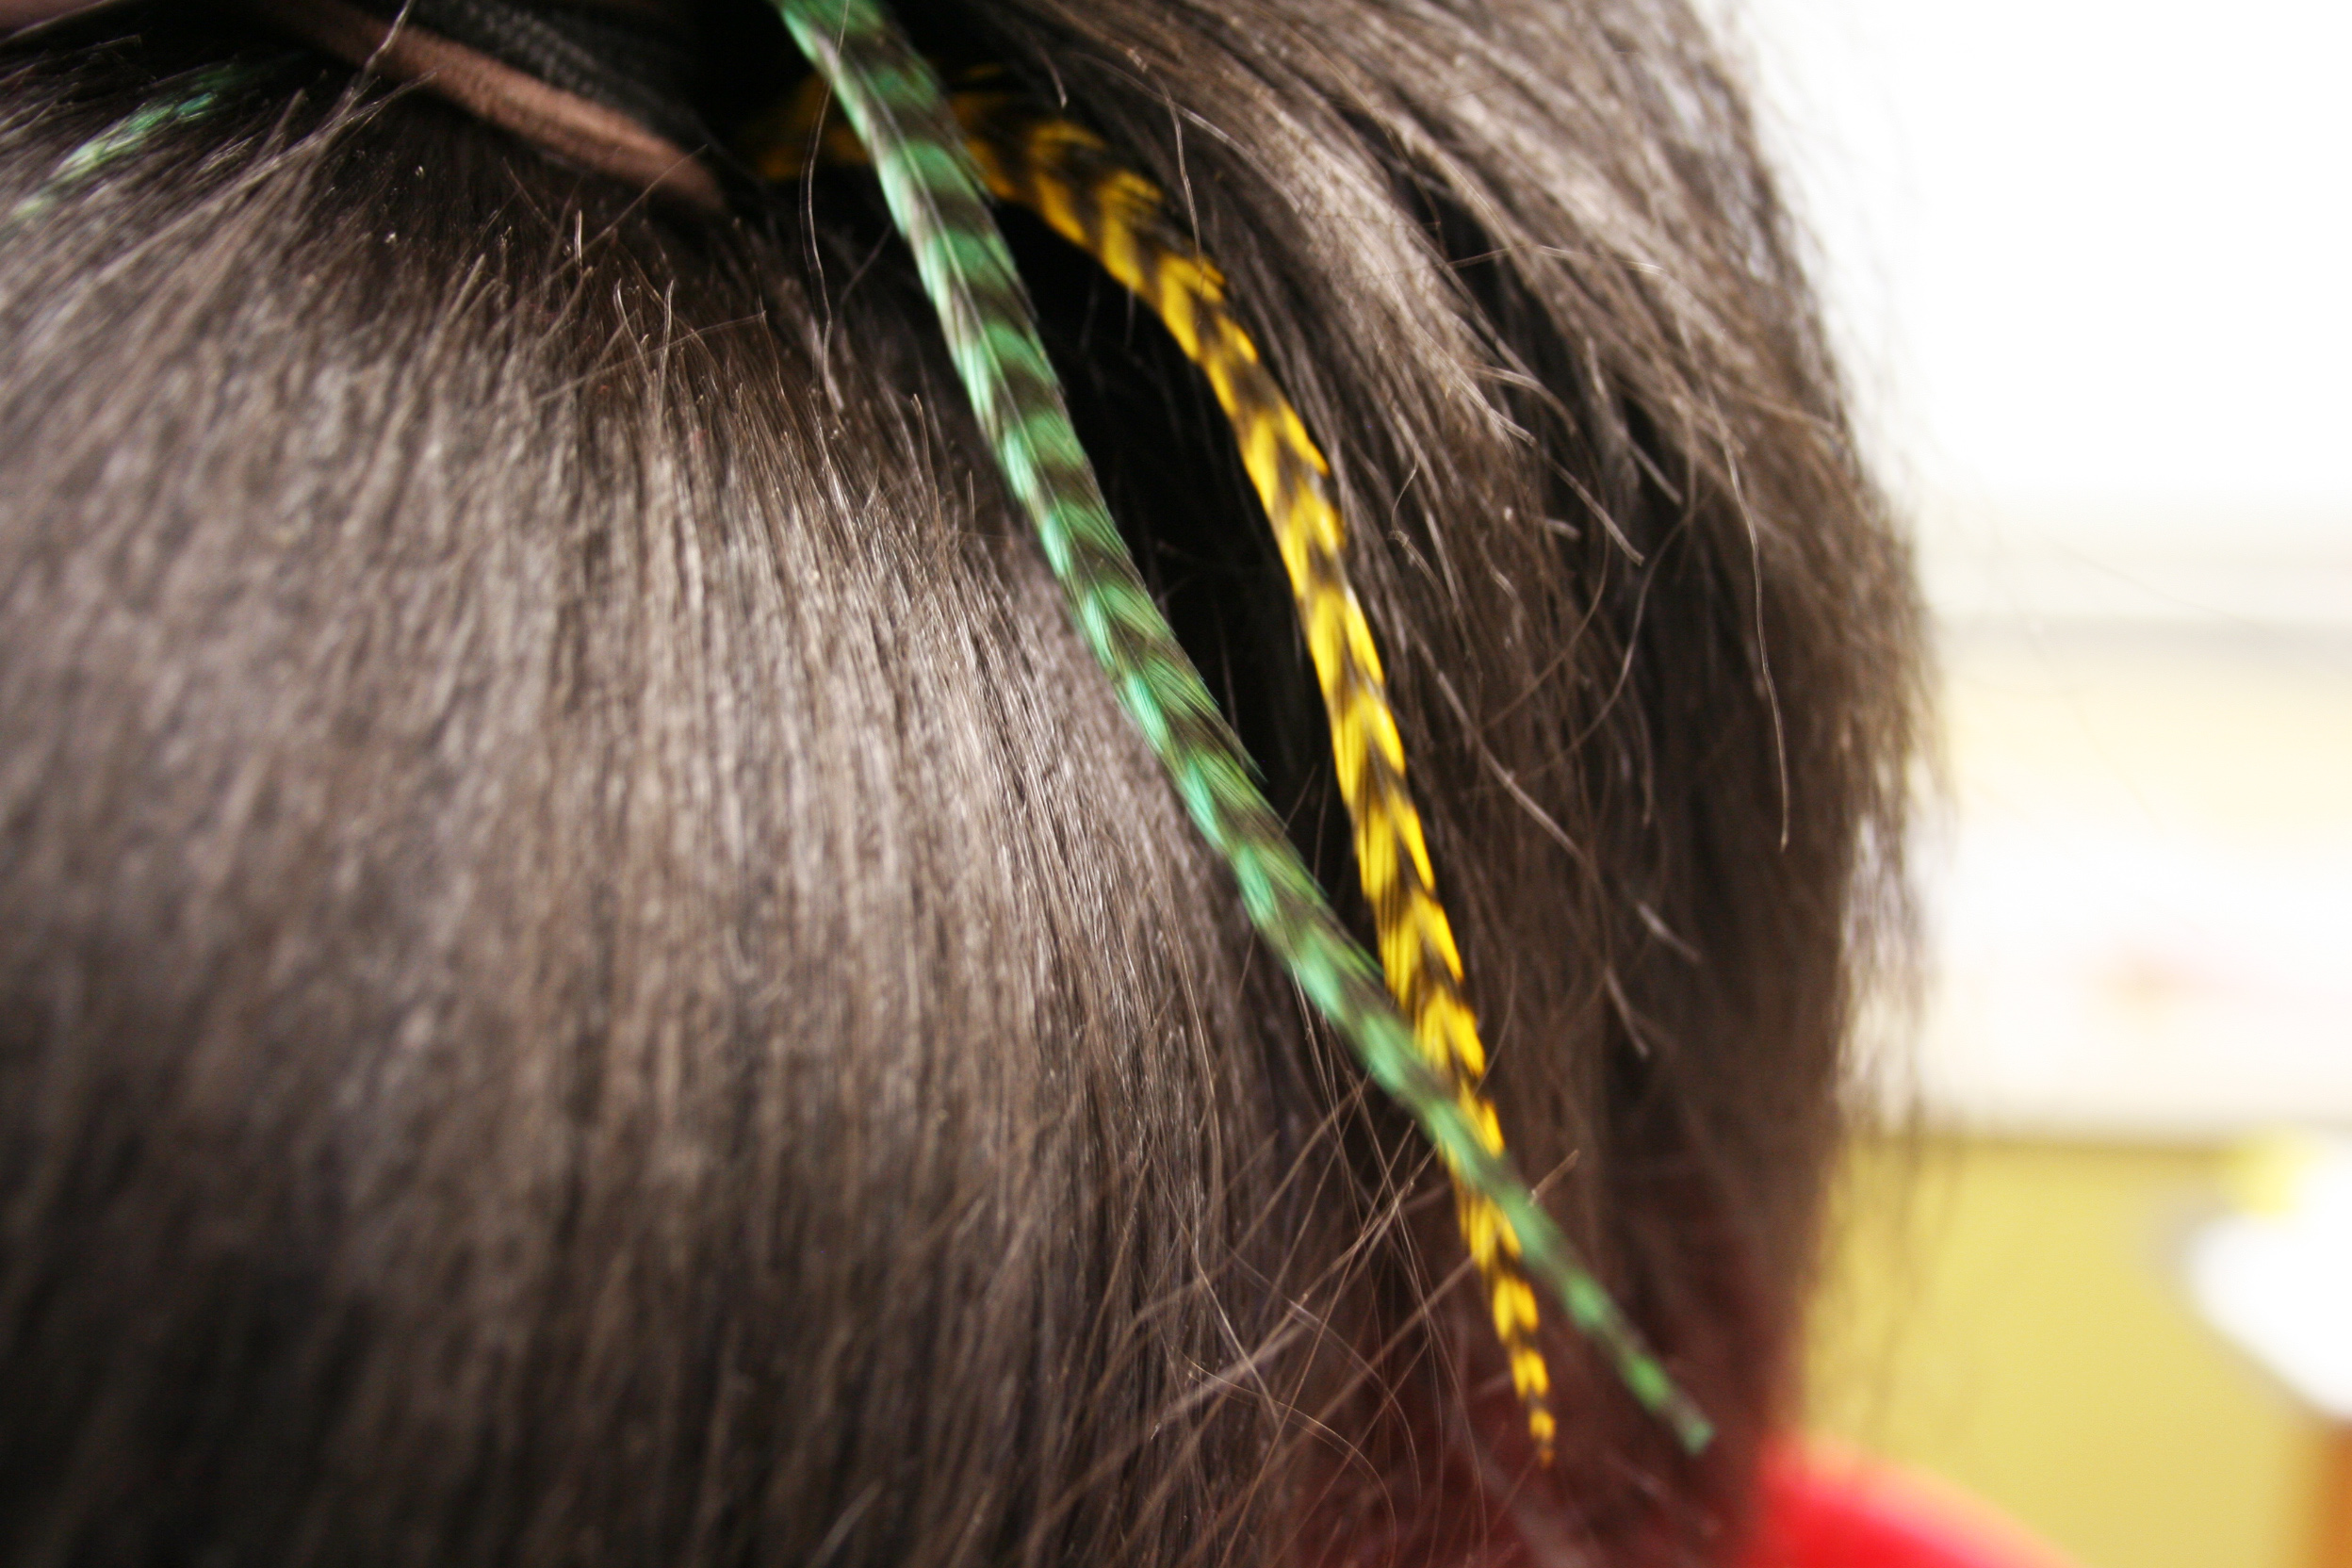 Hair Feather Extensions Add Drama To Style Knight Life News